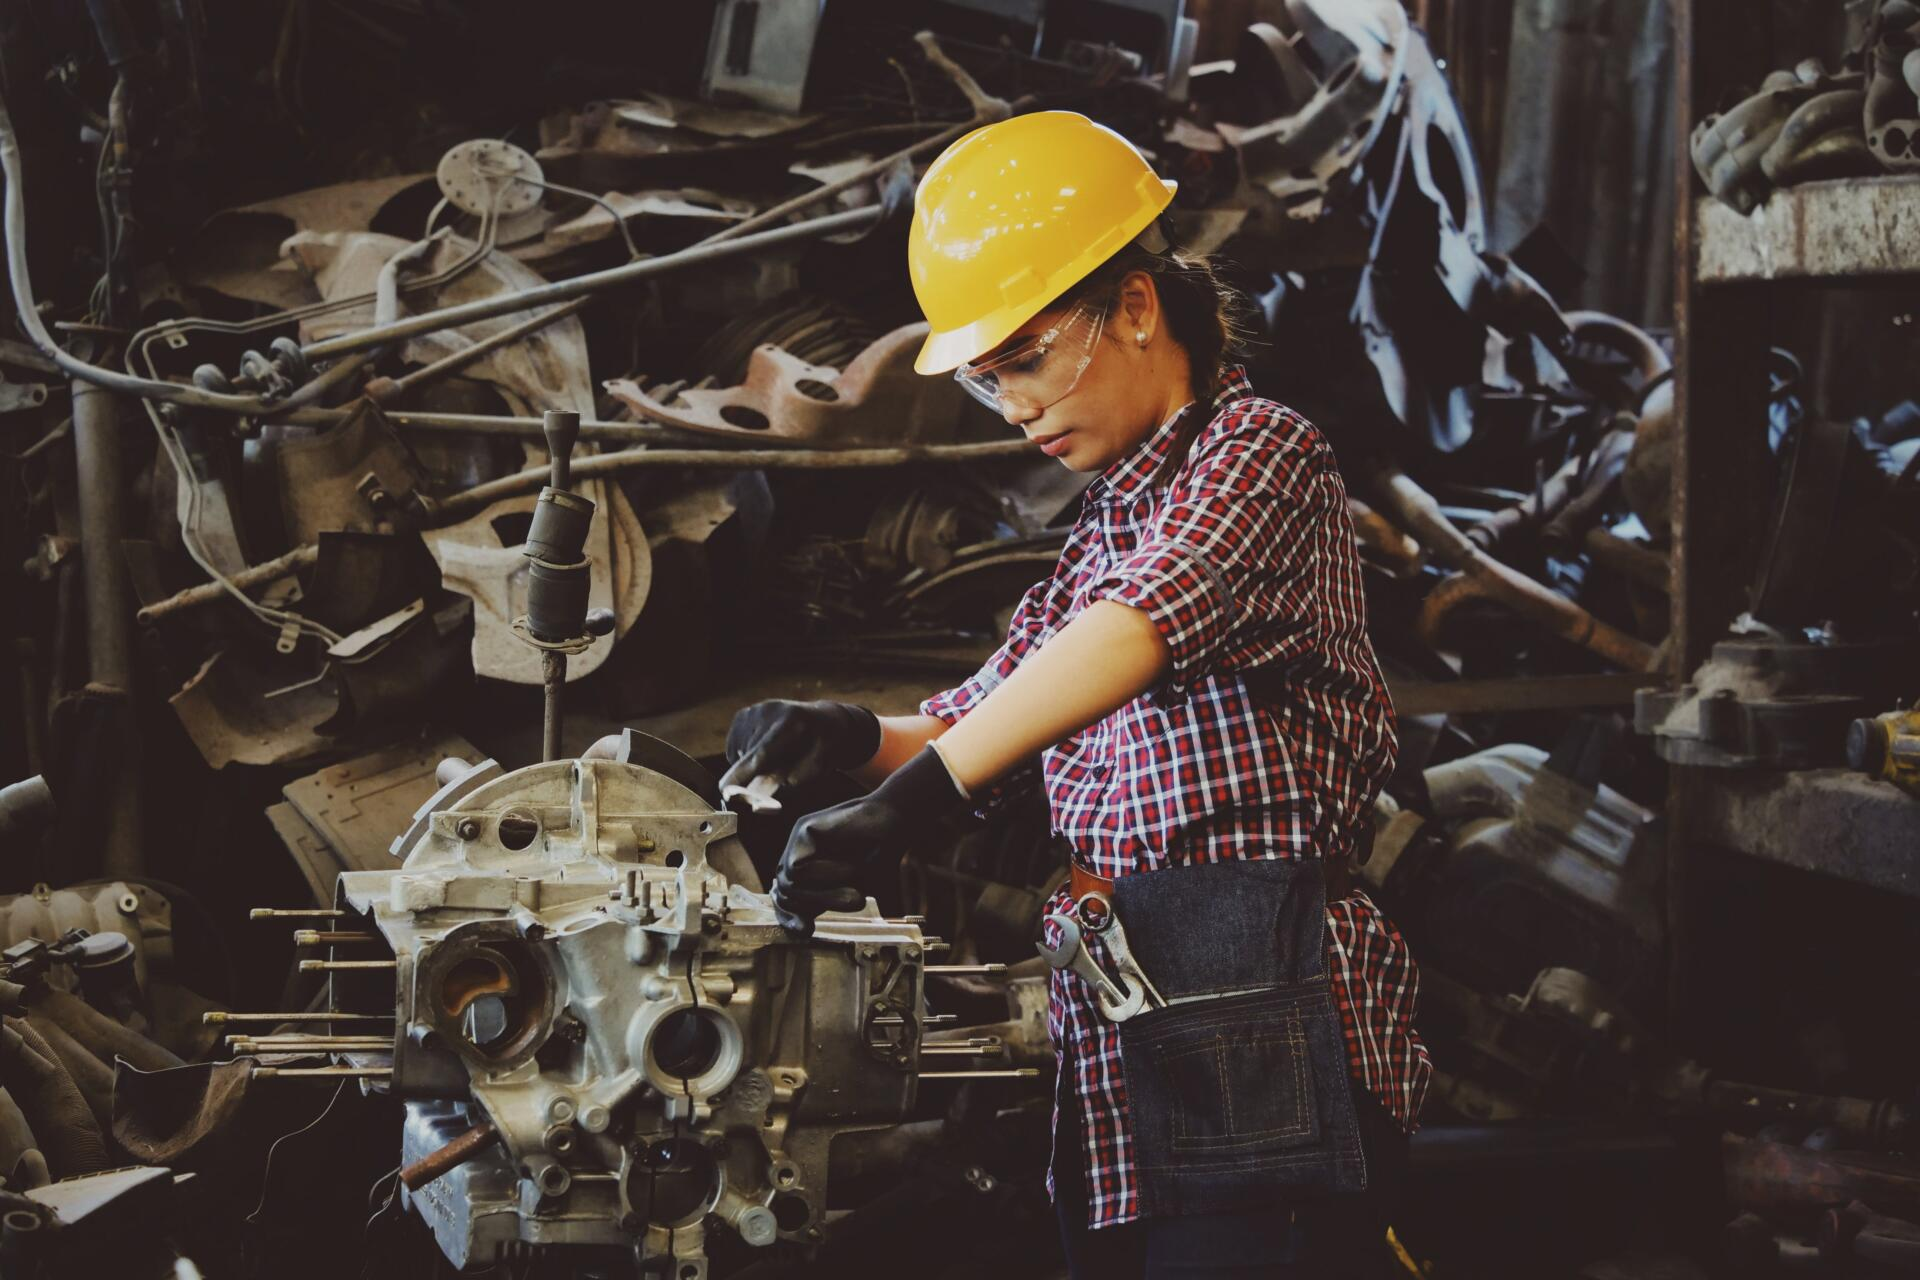 A woman in a checked shirt and a hard hat works on part of a machine.